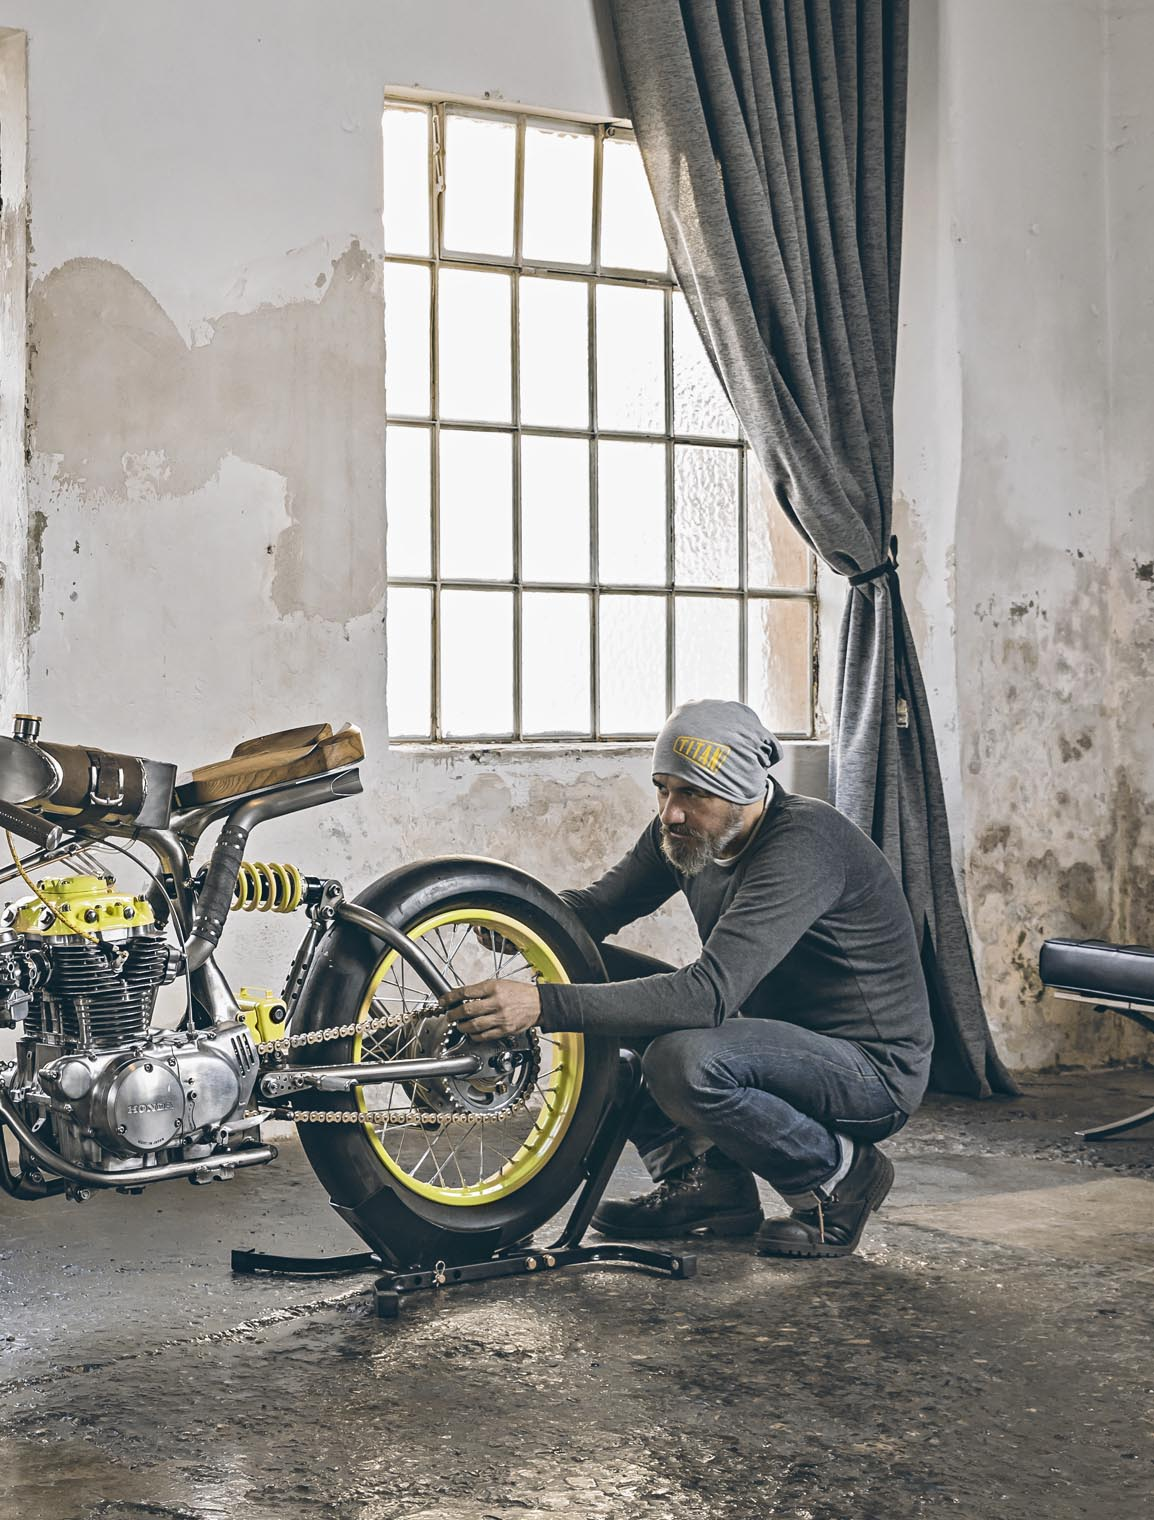 motorcycles_custom_honda_self_built_crazy_yellow_titan_side_guy